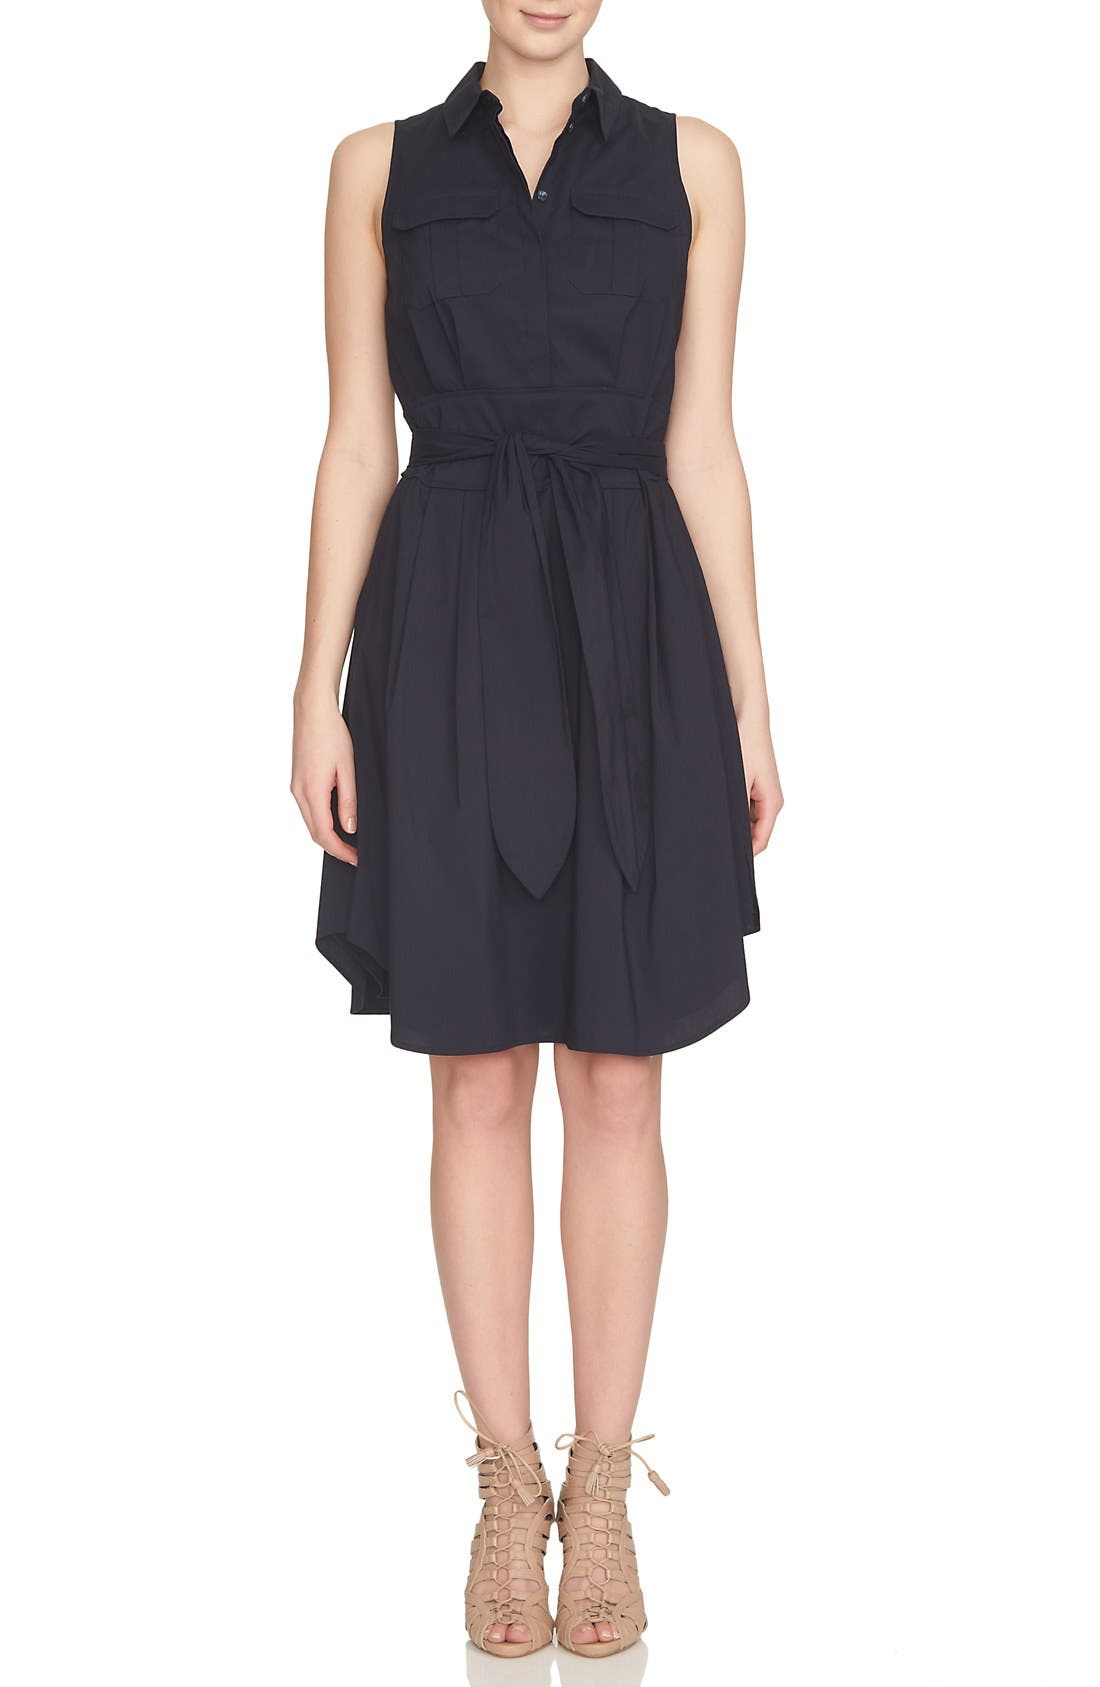 Main Image - Cynthia Steffe Collared Cotton Blend Fit & Flare Dress